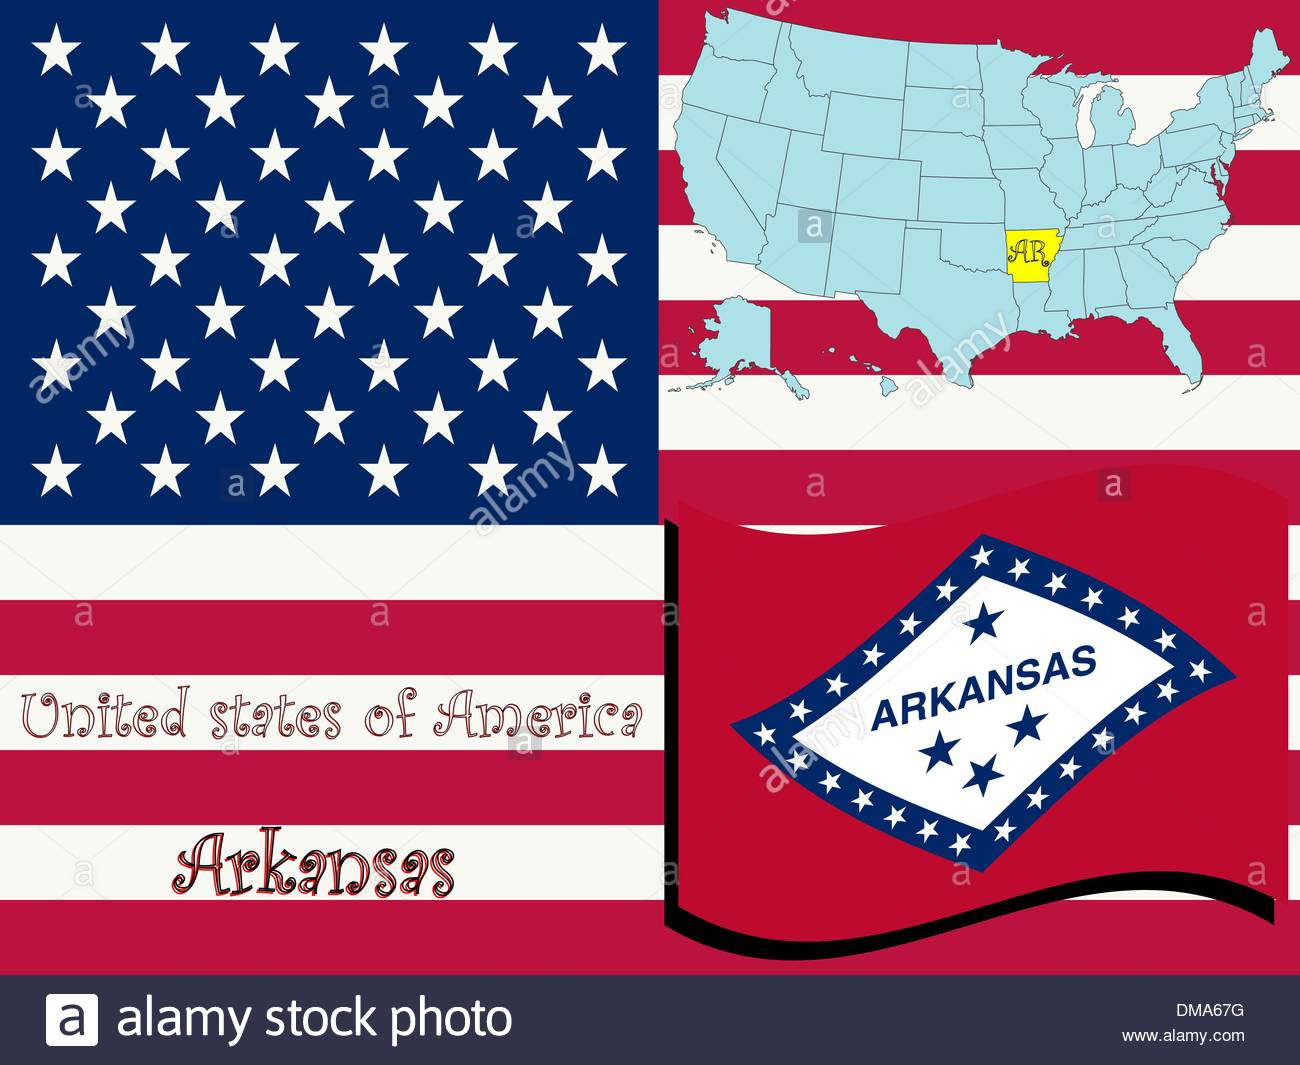 Arkansas State Illustration Stock Photo, Royalty Free Image.